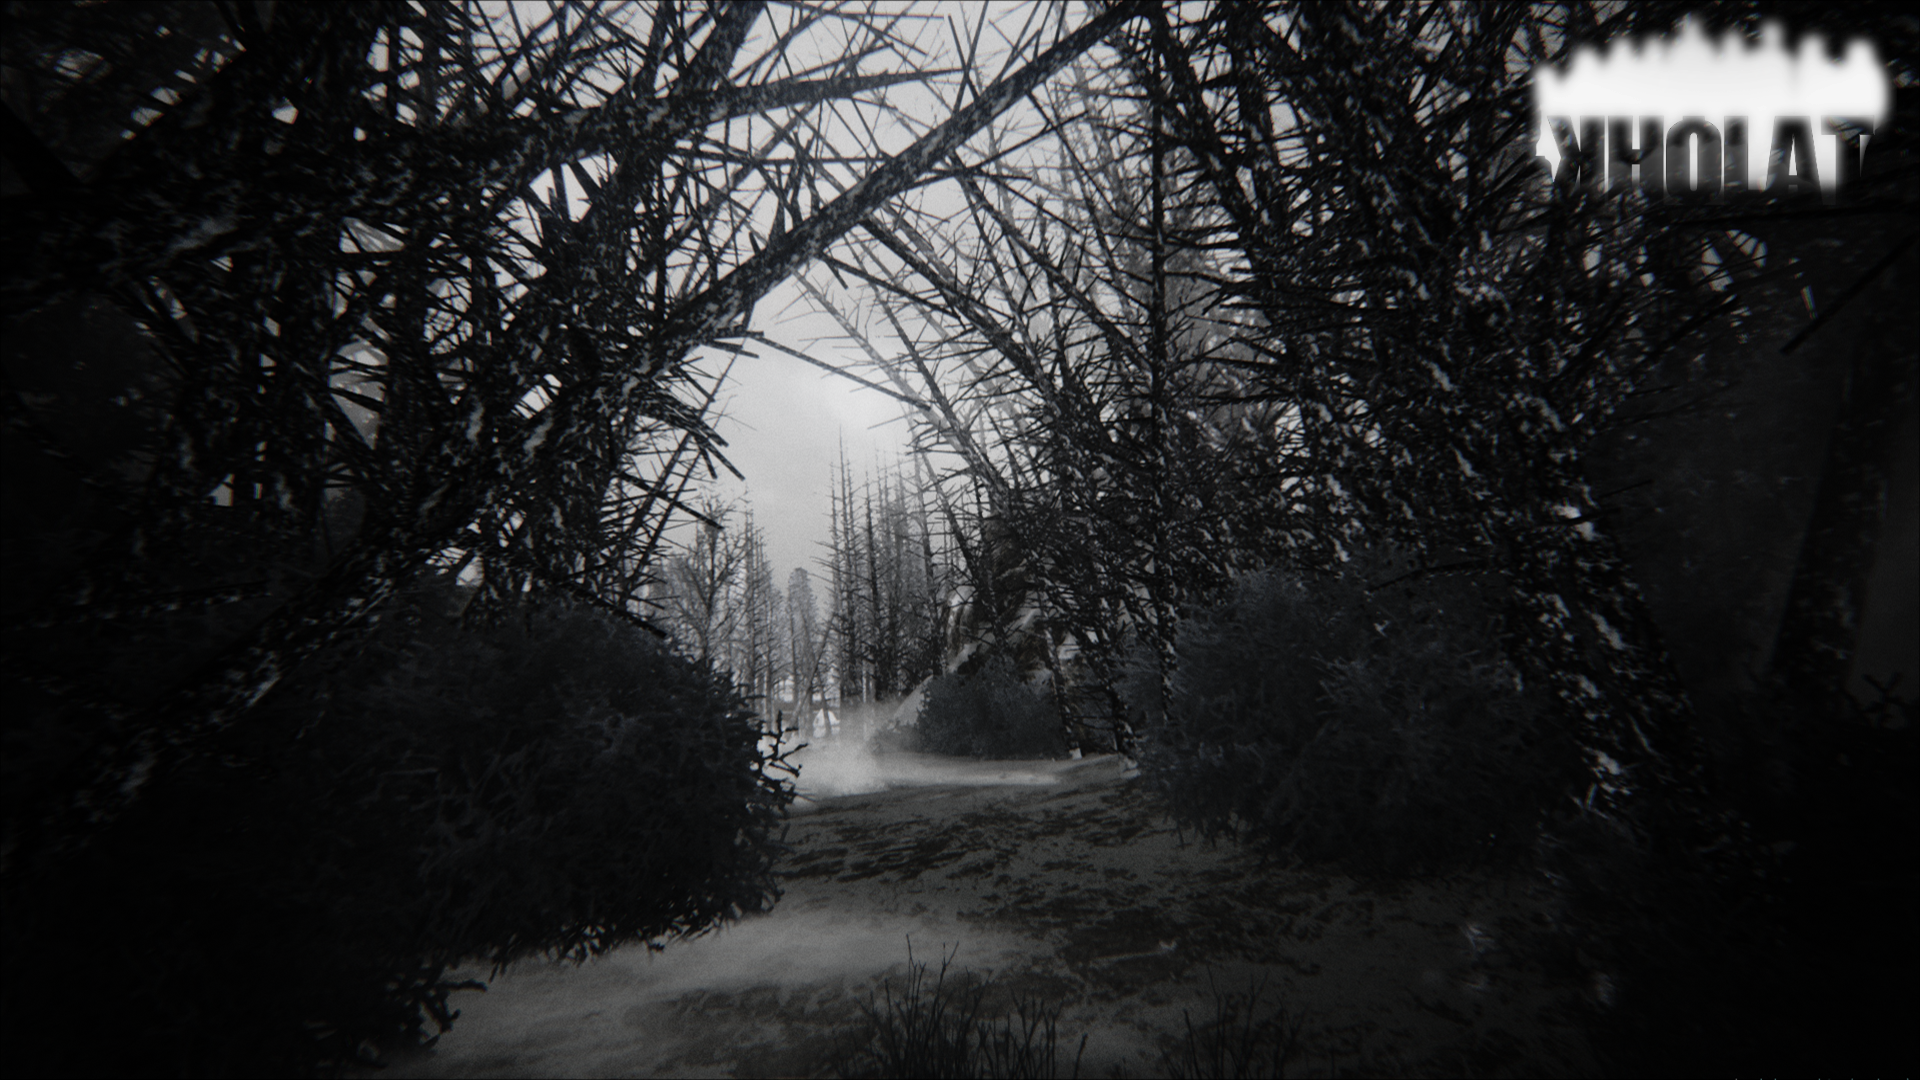 Kholat – a first-person, open world inspired by true events